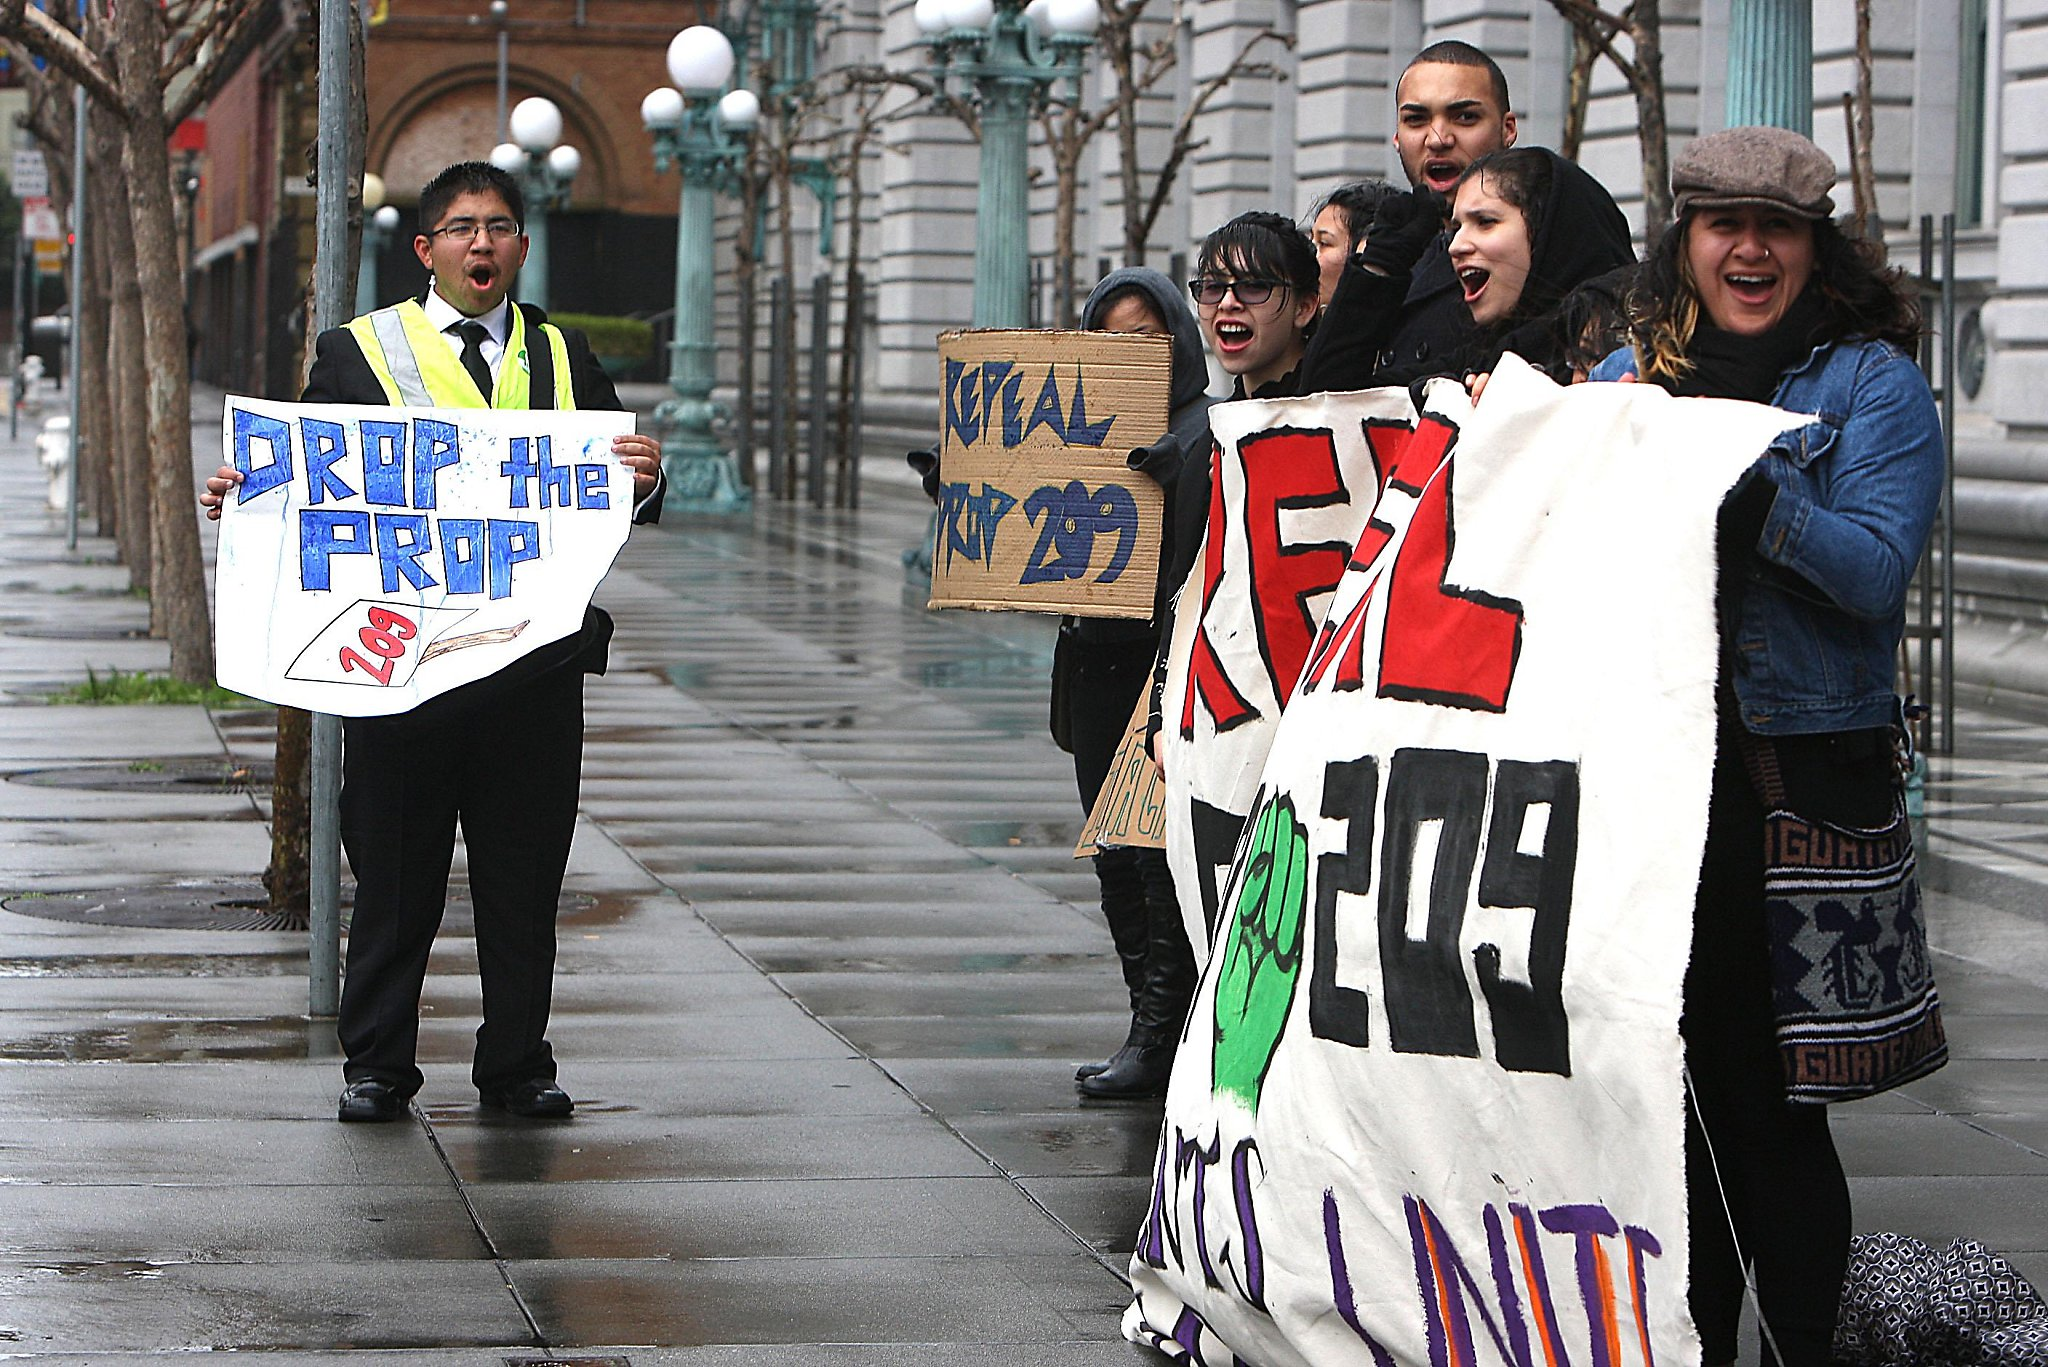 Bills on slavery reparations, affirmative action advance in California Assembly